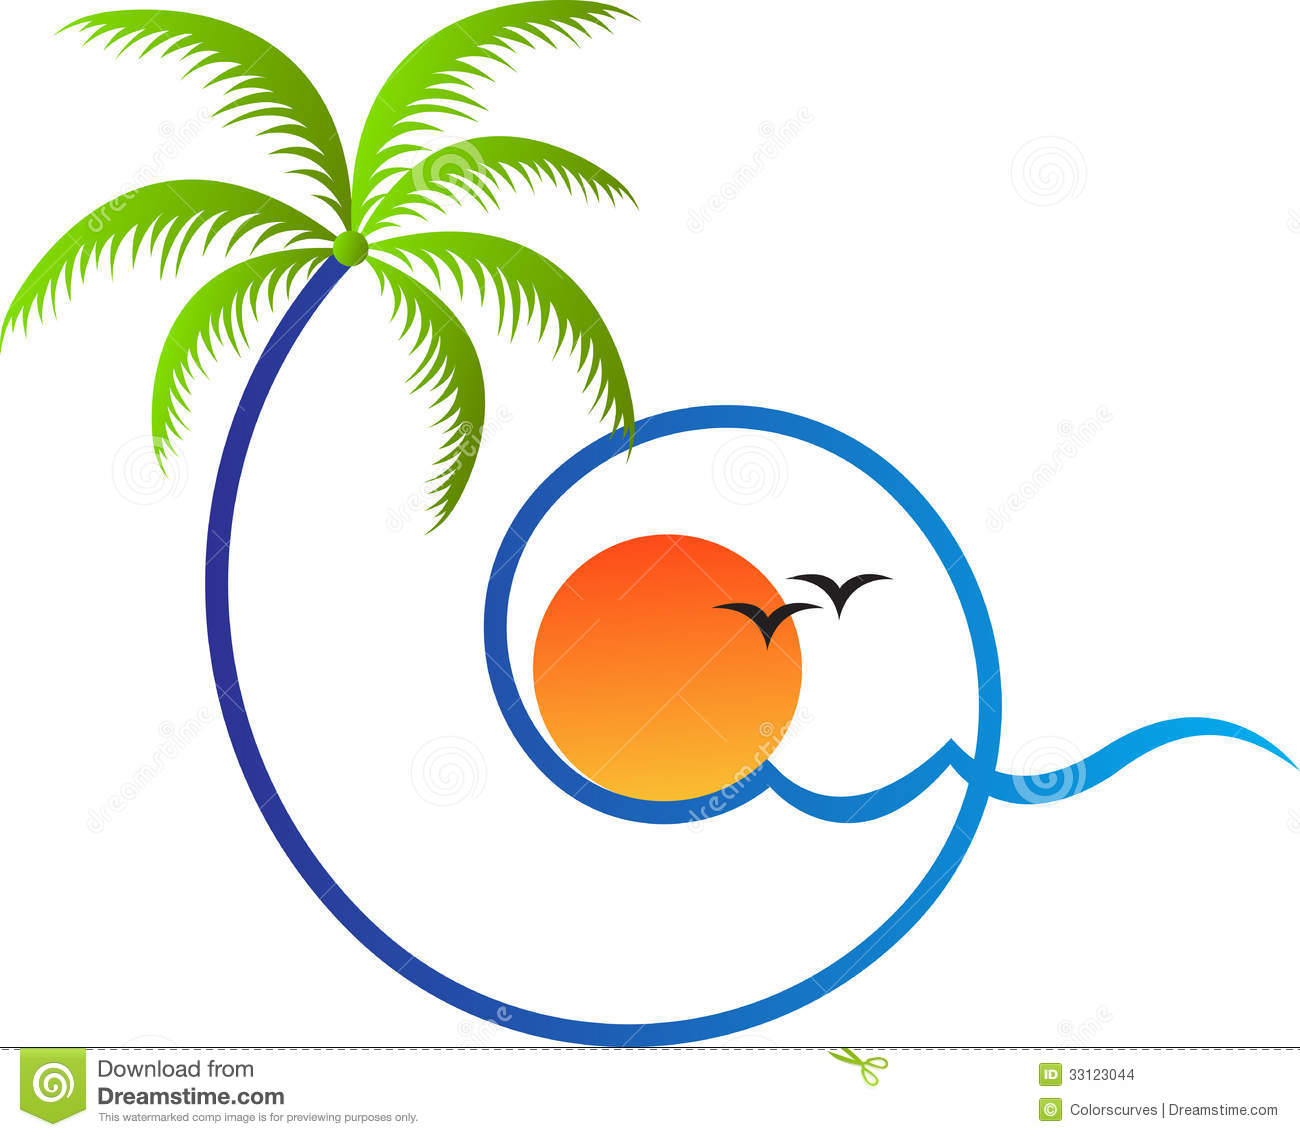 palm tree stock vector illustration of branch illustration 33123044 rh dreamstime com palm tree pattern free vector palm tree leaf free vector